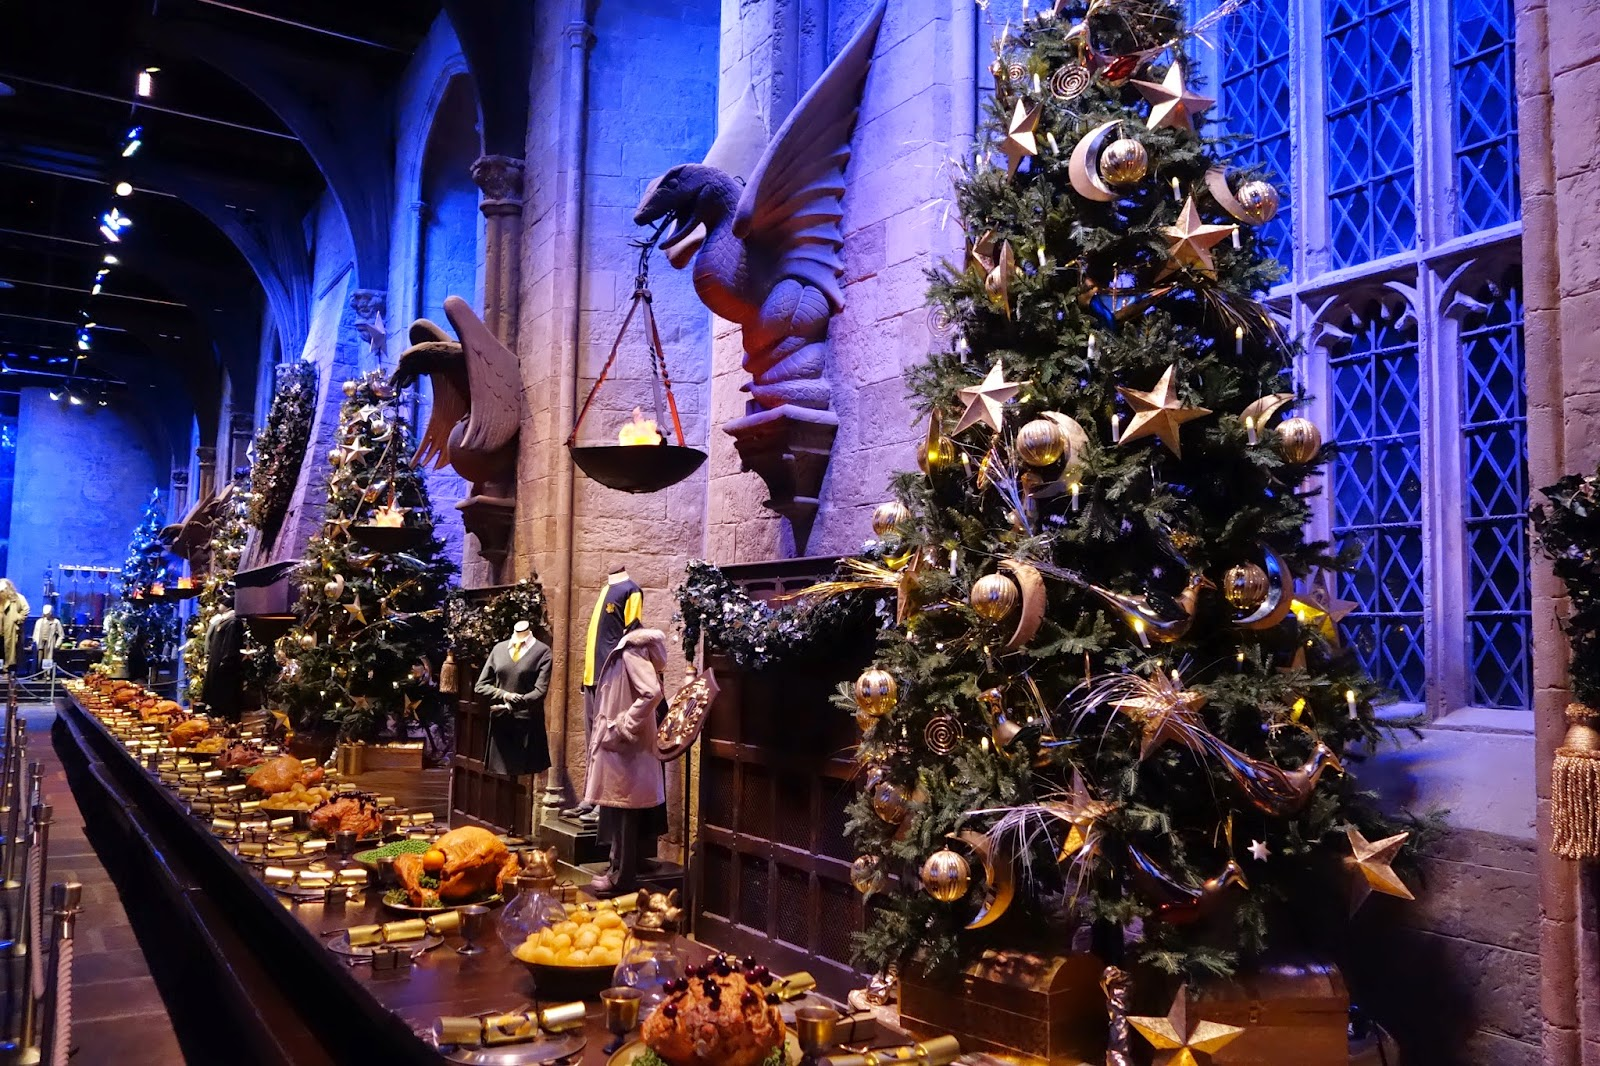 The Great Hall at Hogwarts, Harry Potter Studios